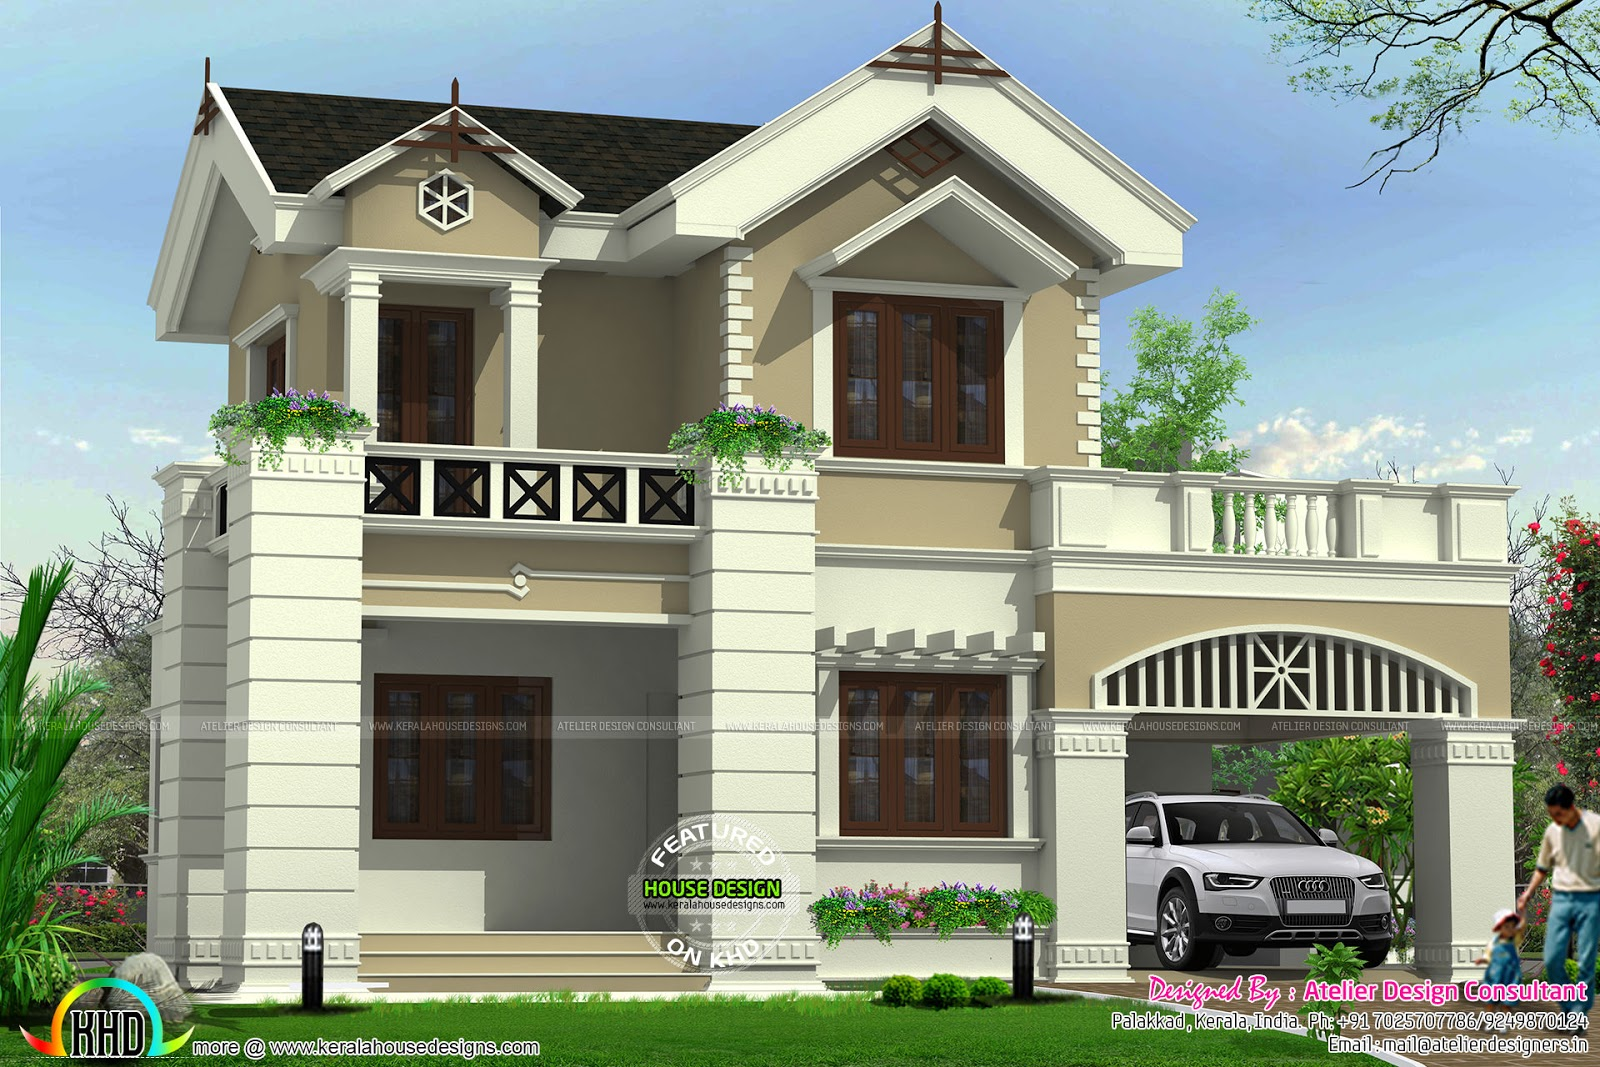 Cute Victorian model home. Cute Victorian model home   Kerala home design   Bloglovin